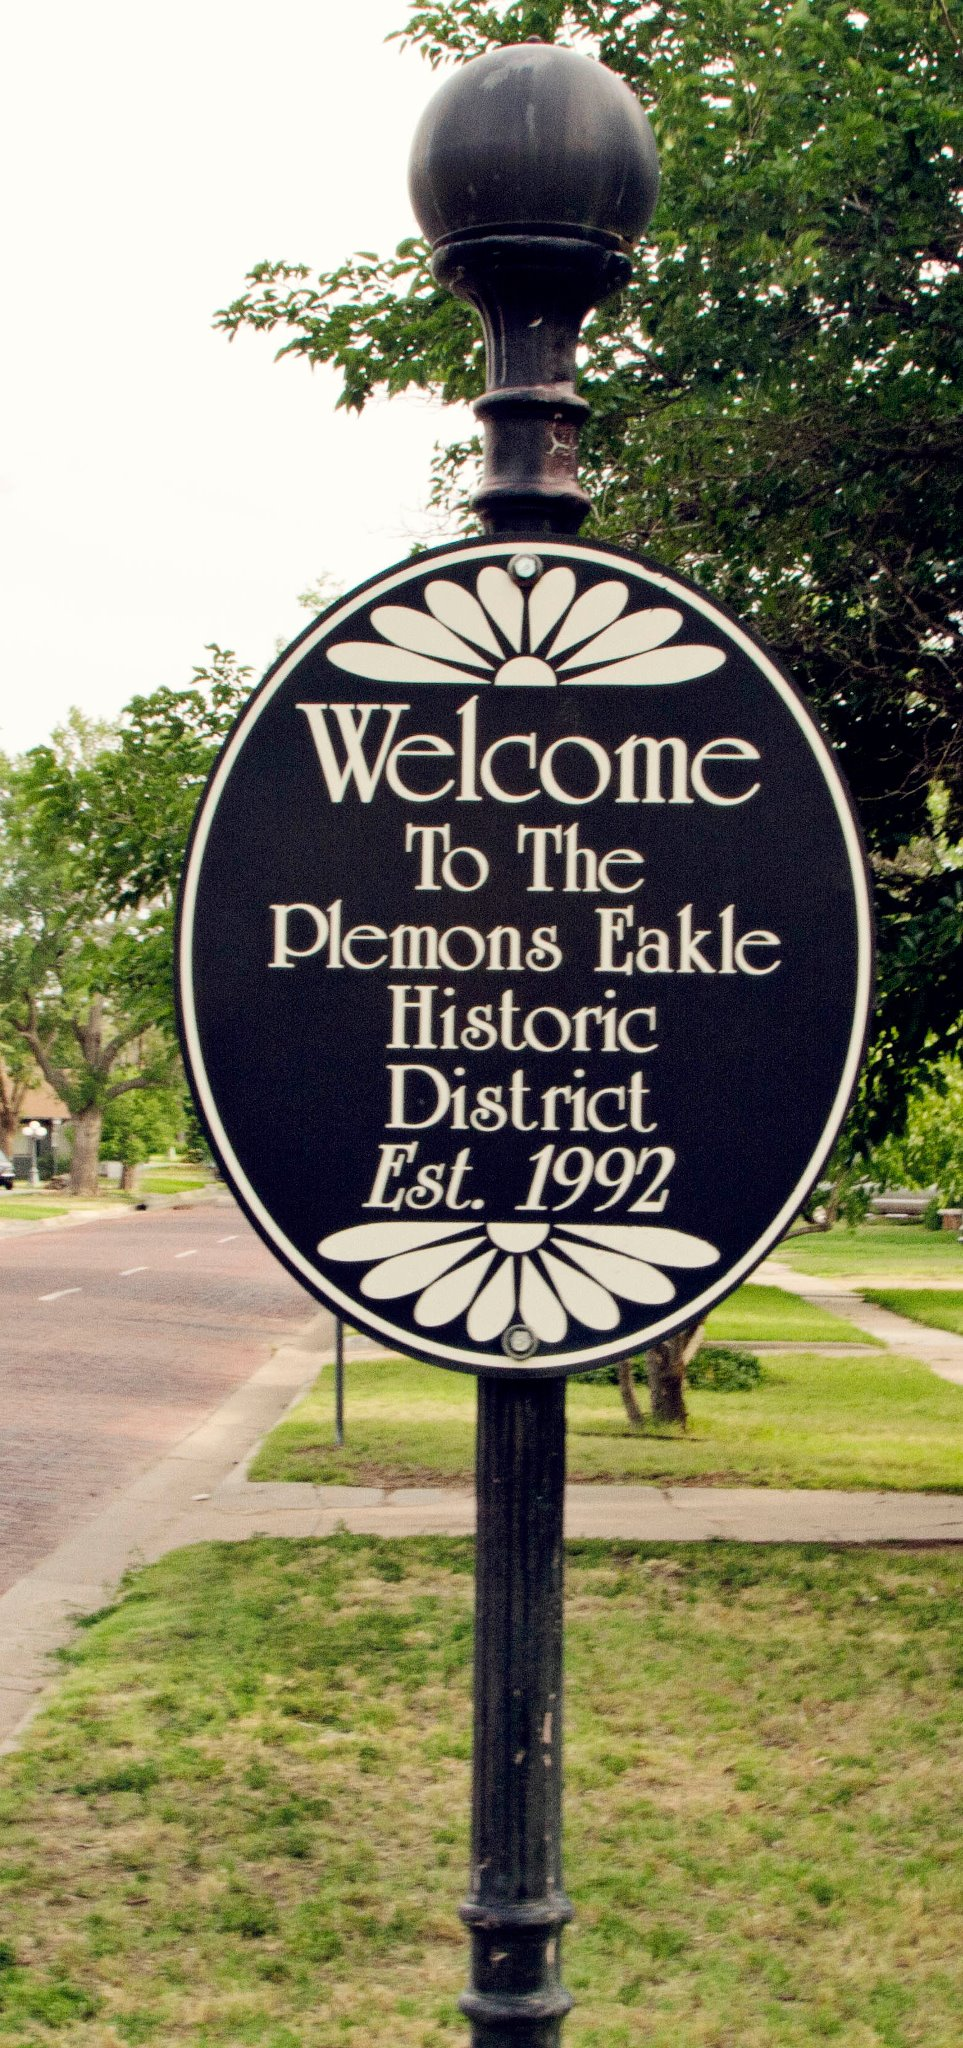 Plemons-Eakle Historic District Marker